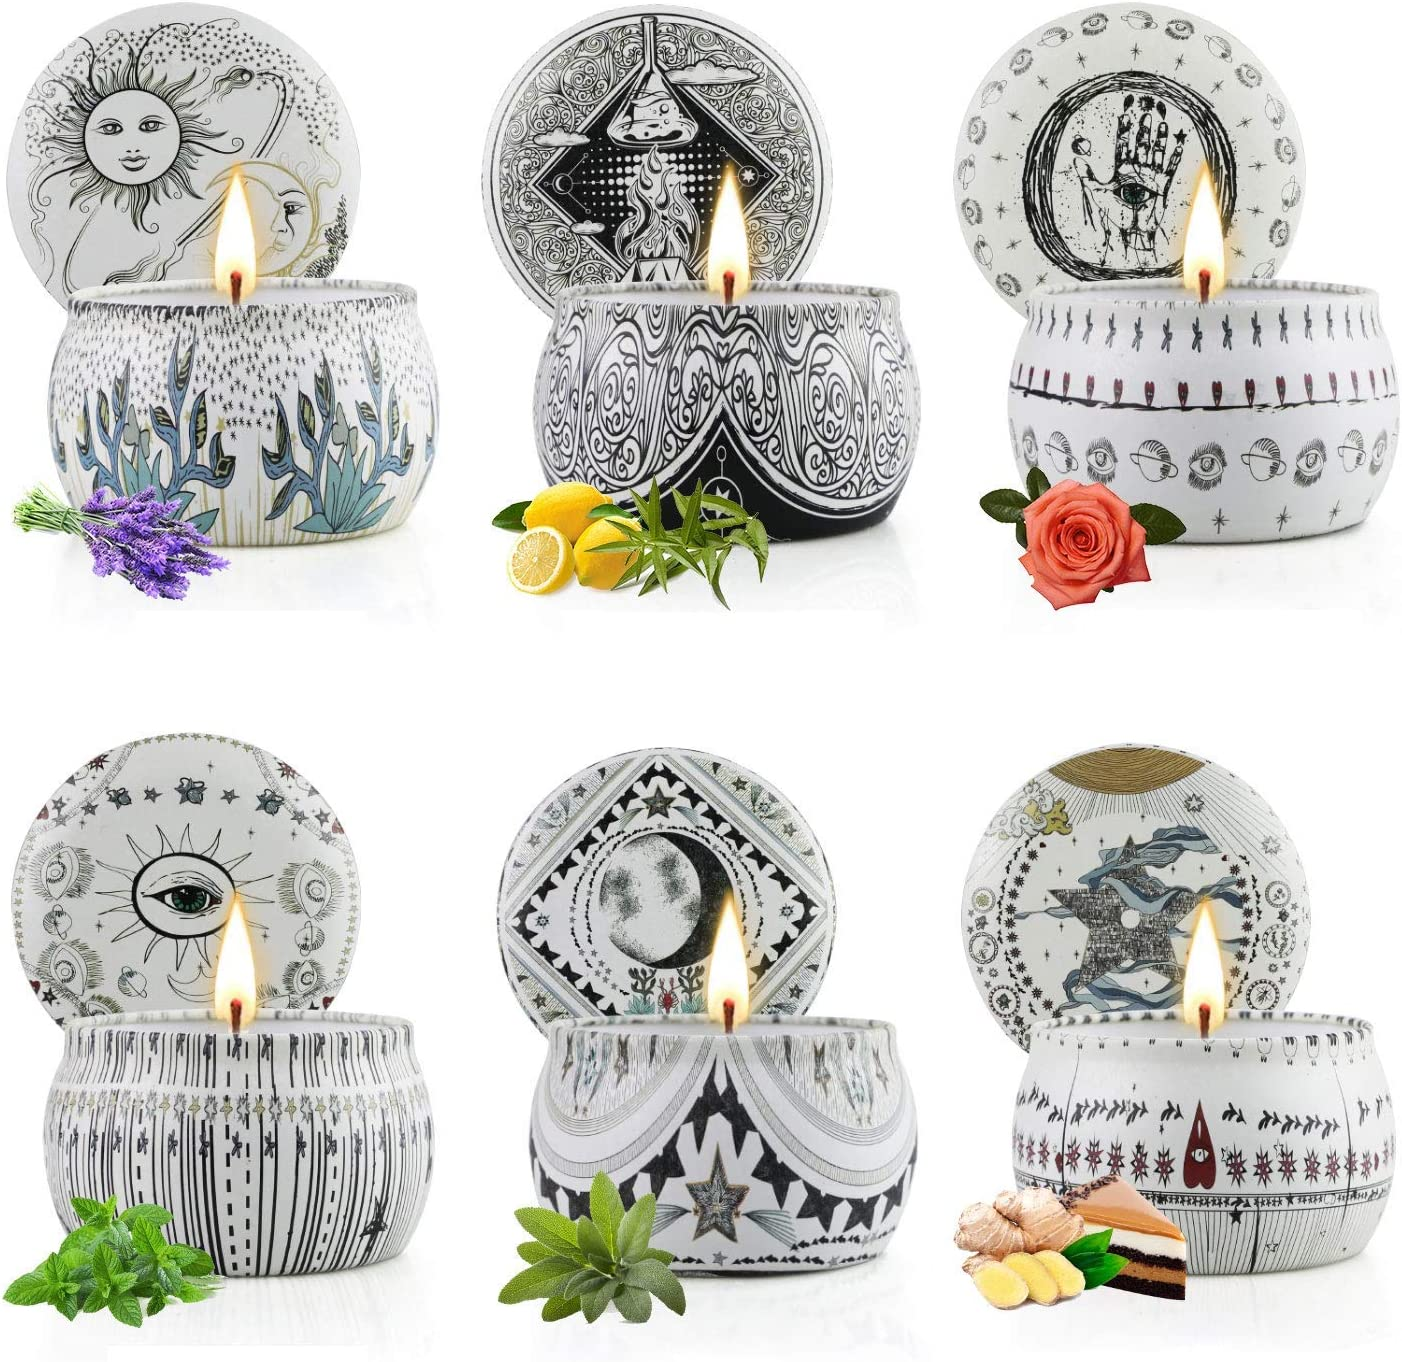 Scented Candles Gift Set for Women Po Clearance SALE! Limited time! Pack 6 Long Beach Mall Candle Aromatherapy